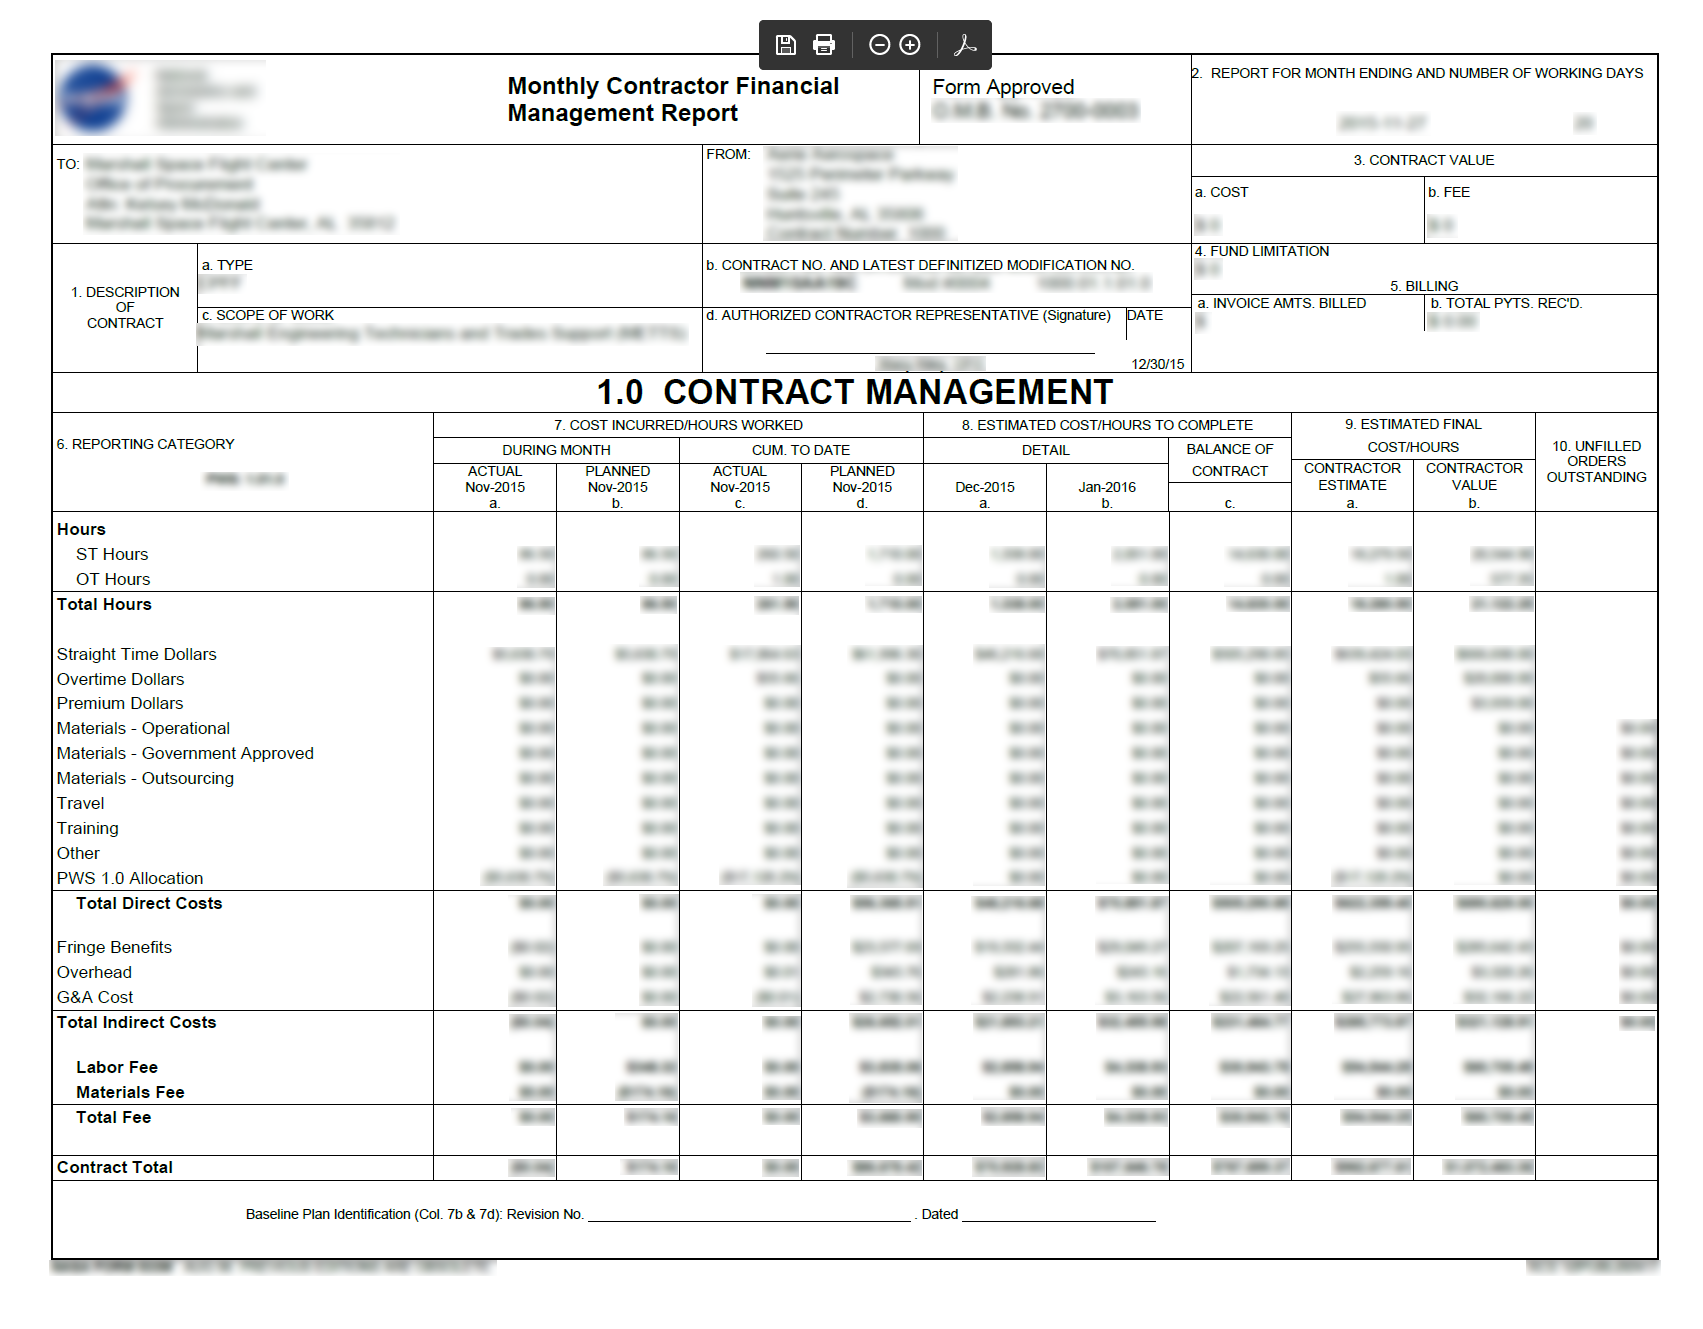 Monthly Financial Management Report